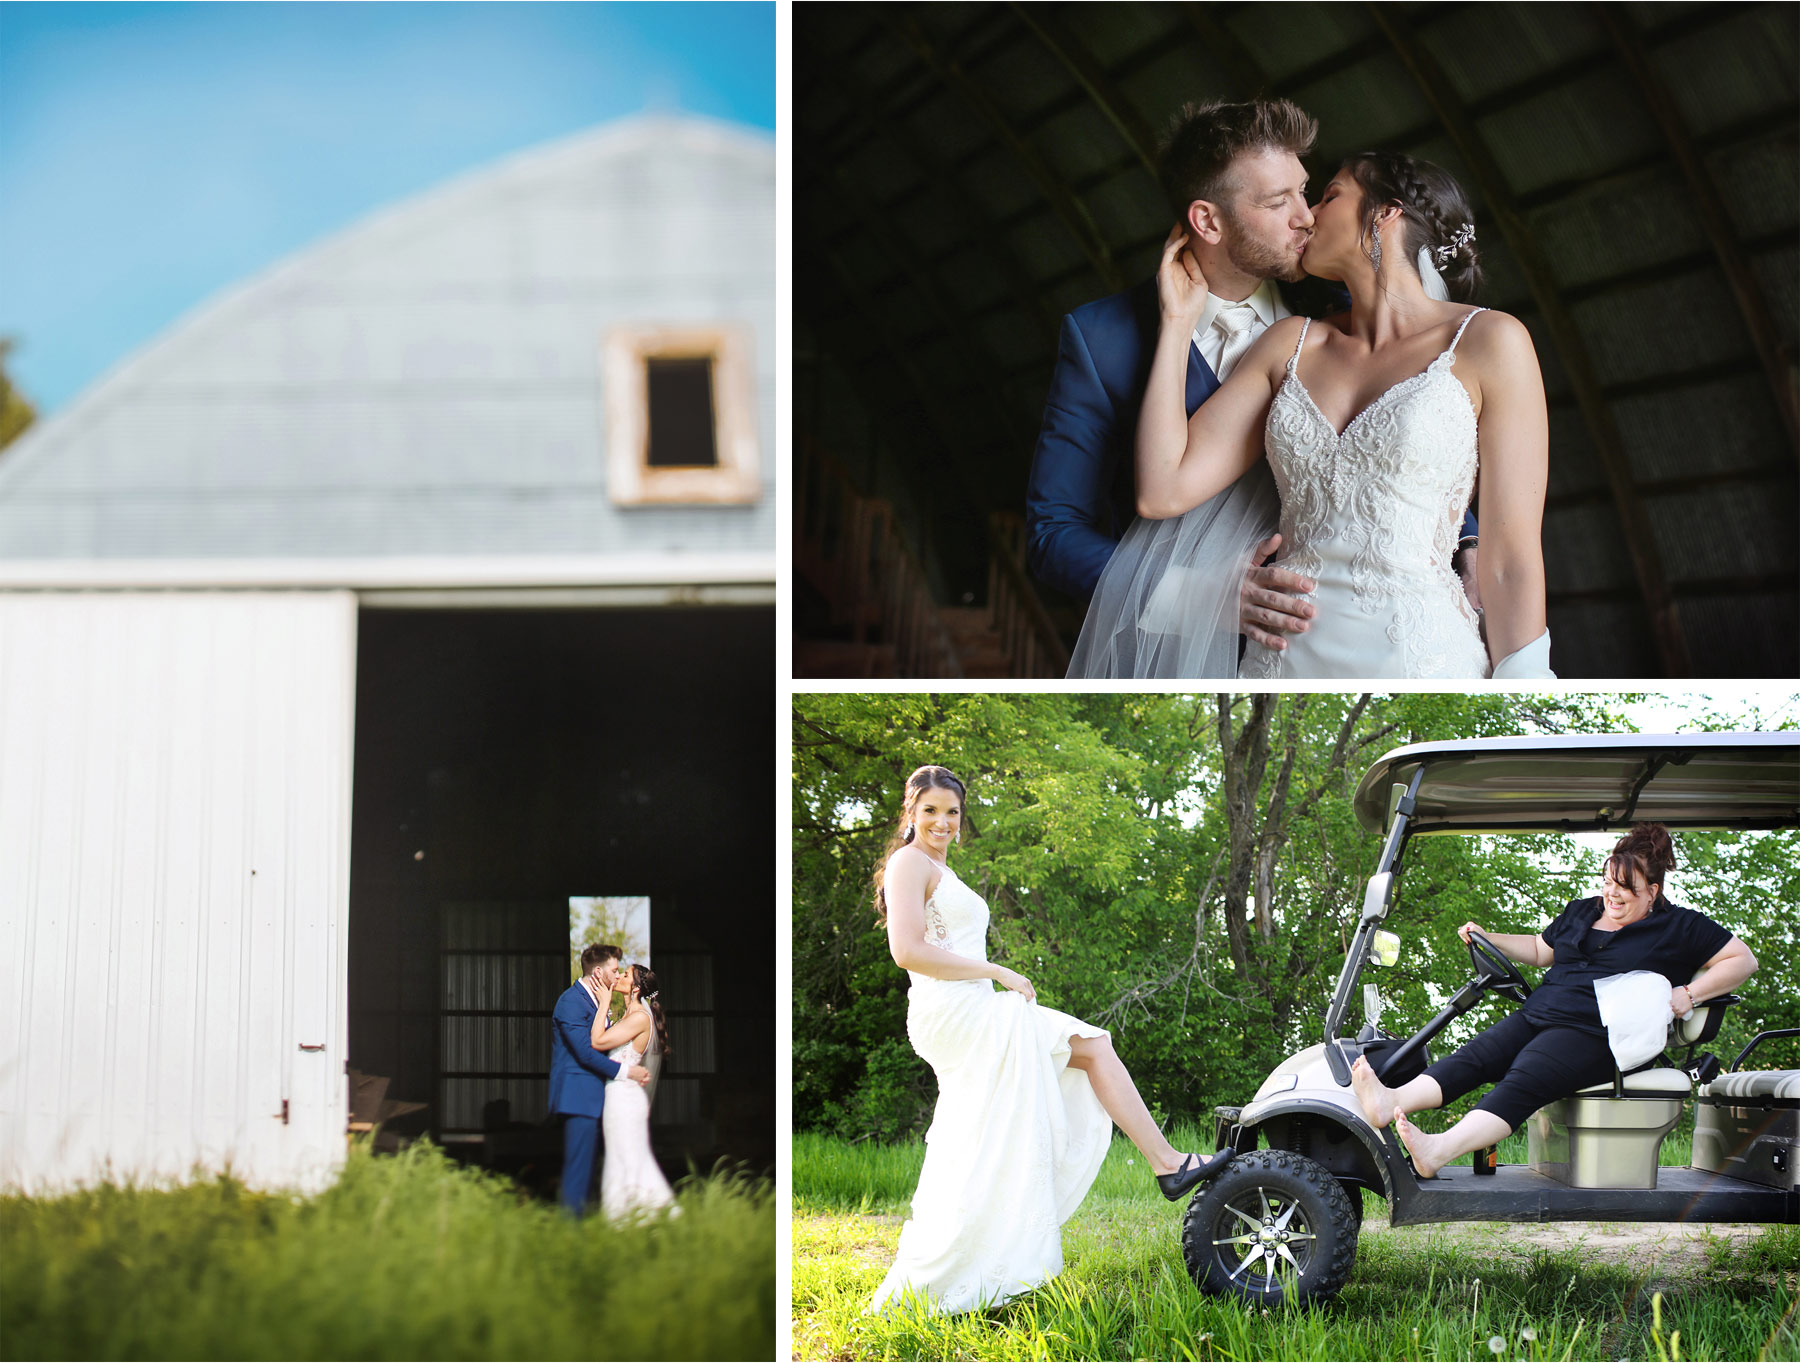 19-Minneapolis-Minnesota-Wedding-Andrew-Vick-Photography-Bavaria-Downs-Bride-Groom-Summer-Barn-Paige-and-Blake.jpg